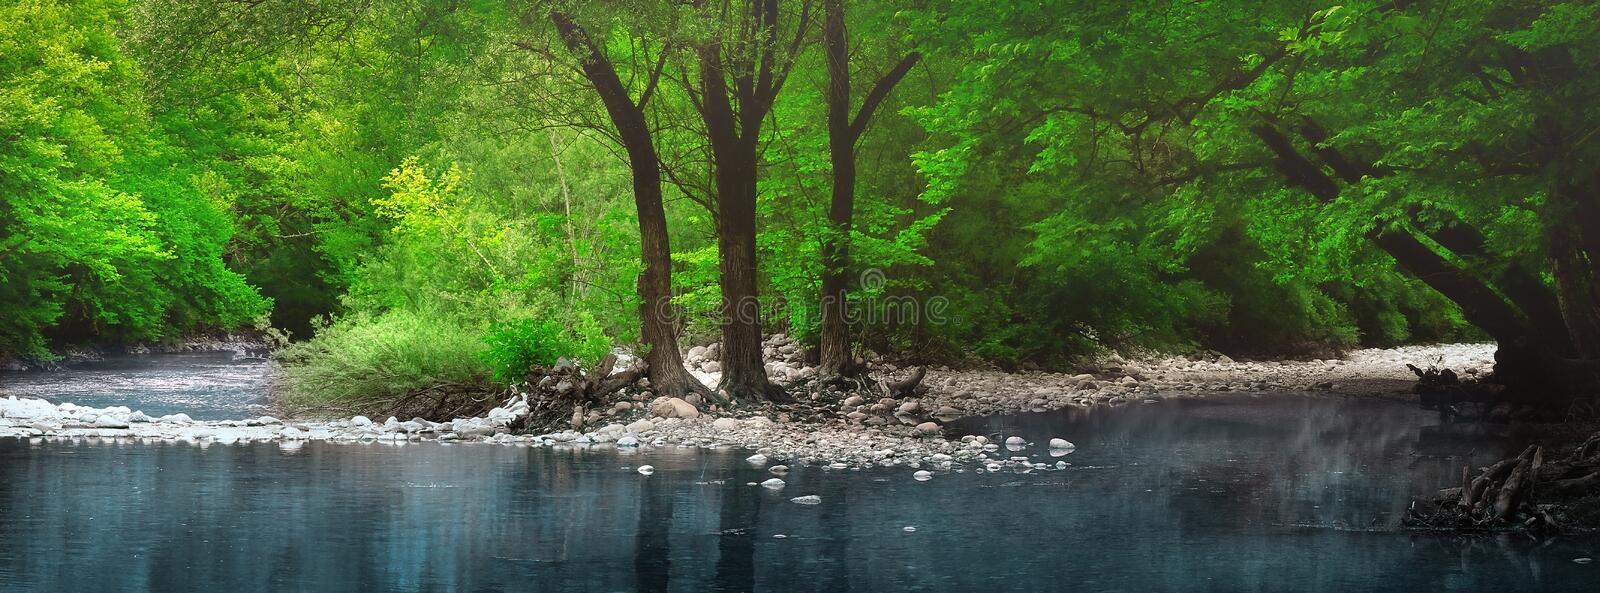 Reflections of tree trunks in a beautiful pond - Mount Olympus, Greece royalty free stock photos